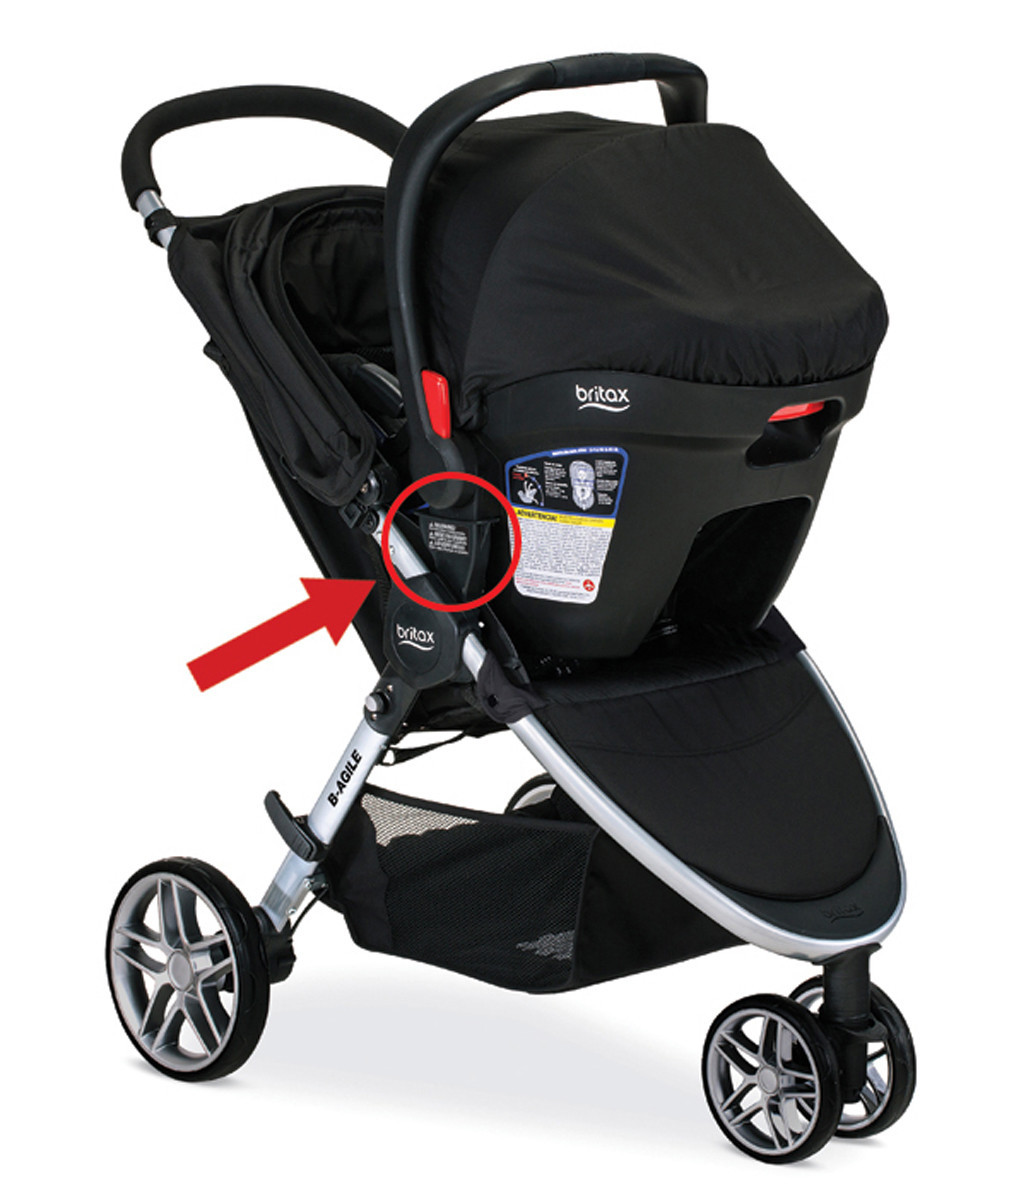 click go system for strollers sold at target babies 39 r us recalled could disengage sun. Black Bedroom Furniture Sets. Home Design Ideas